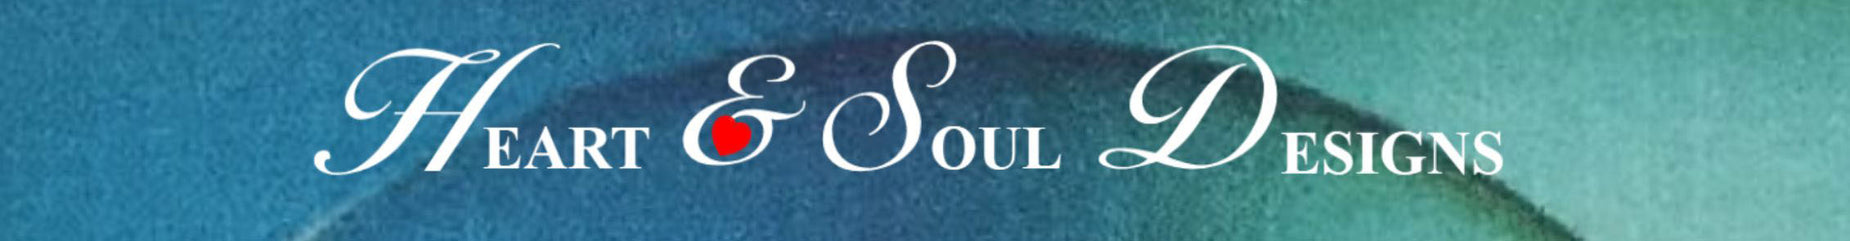 heartandsouldesigns